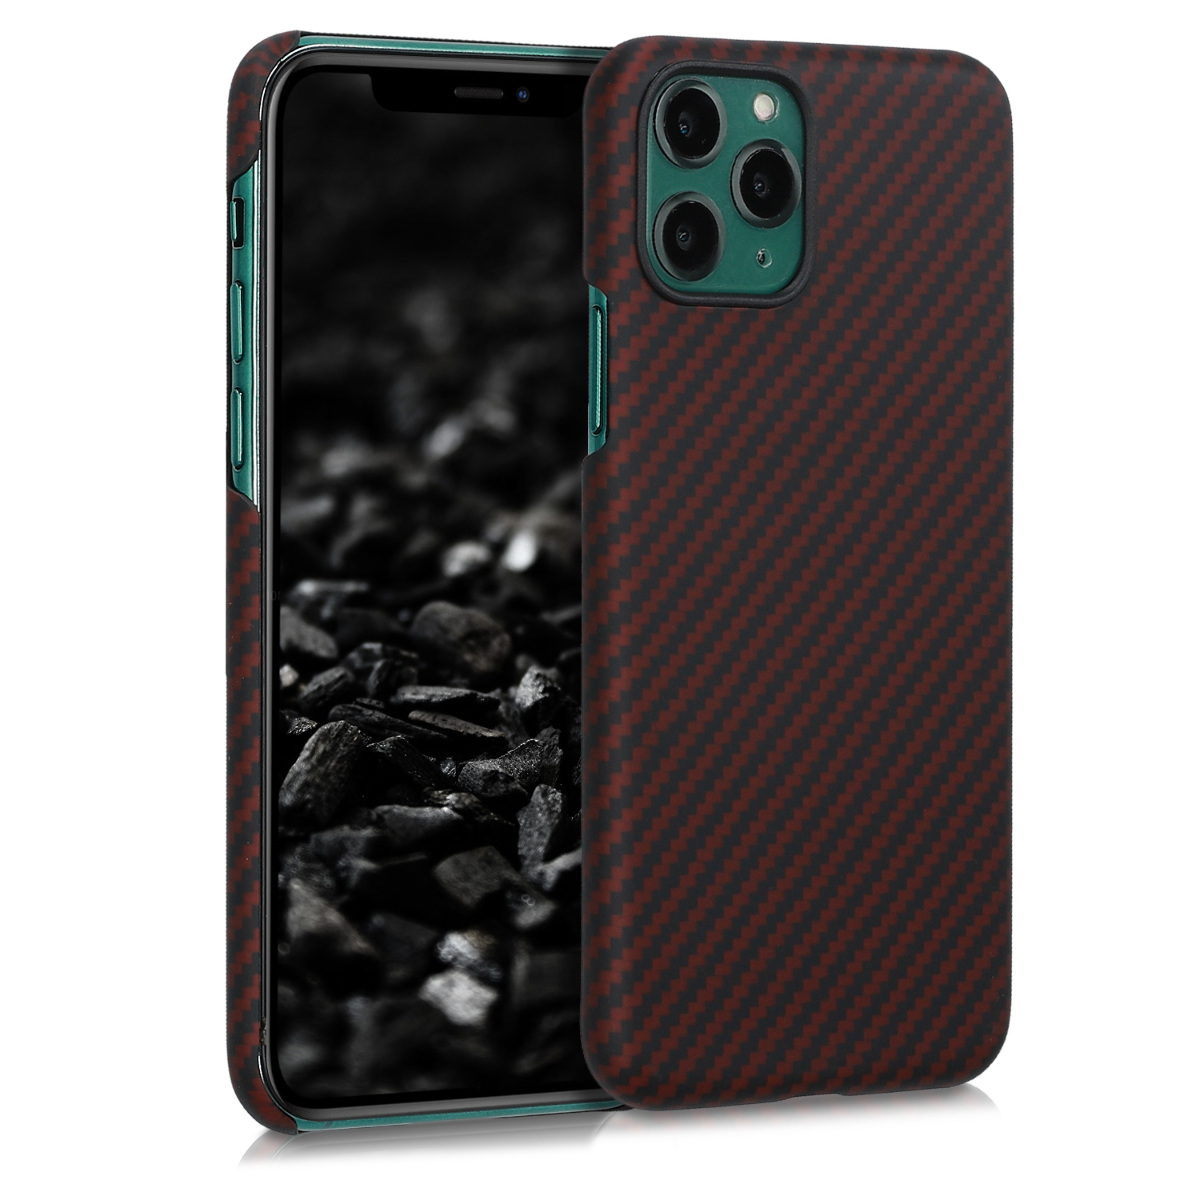 Kalibri Aramid Fiber Body - Σκληρή Θήκη Apple iPhone 11 Pro - Red Matte / Black (49733.51)